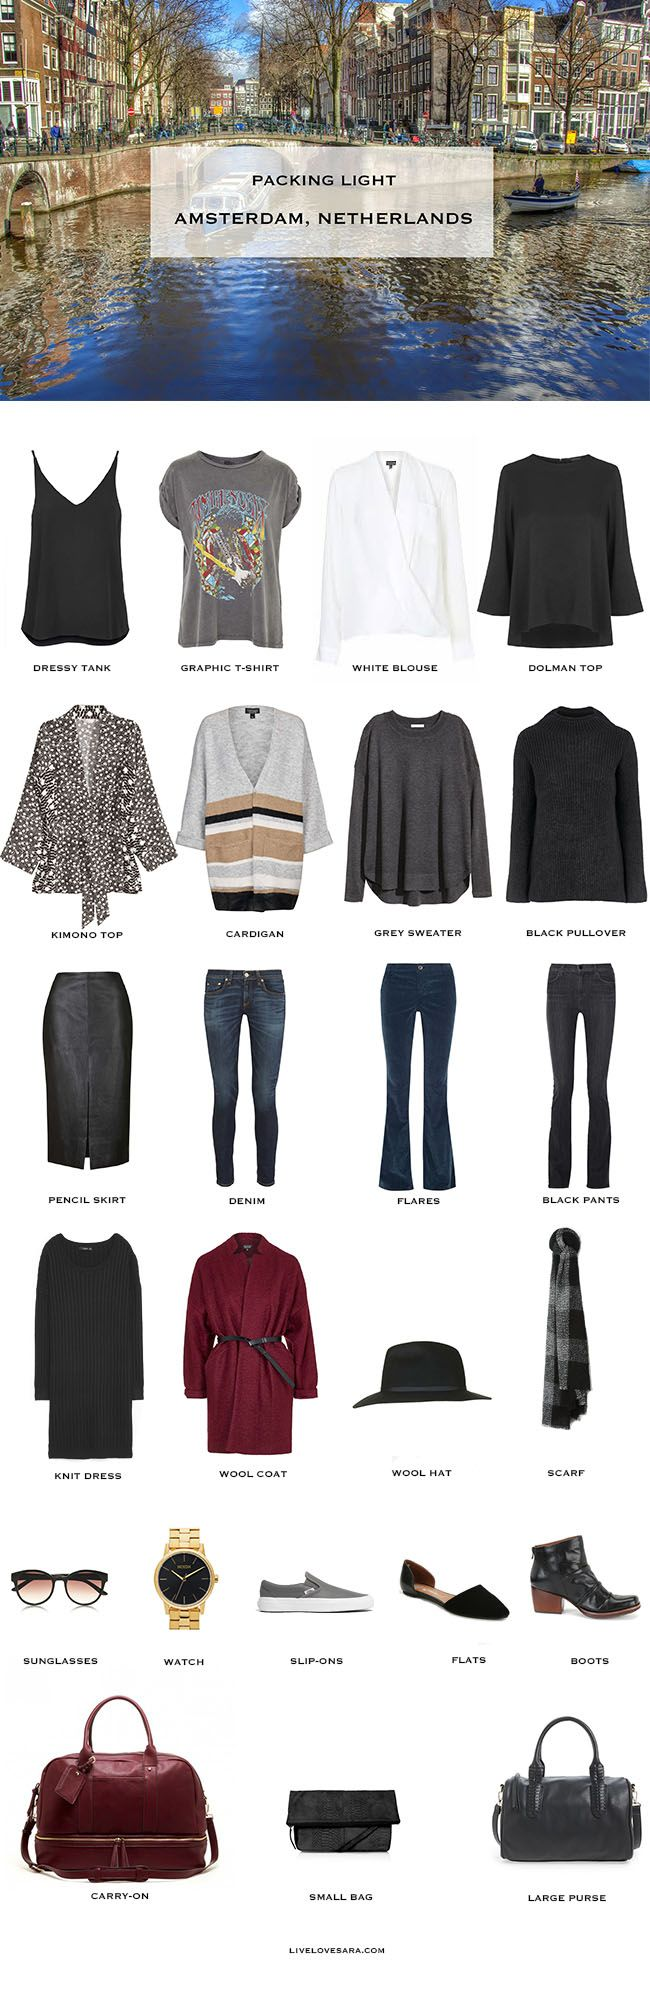 this weeks packing light, packing list is for Amsterdam plus outfit options here: http://livelovesara.com/2015/09/packing-light-amsterdam-outfit-options/